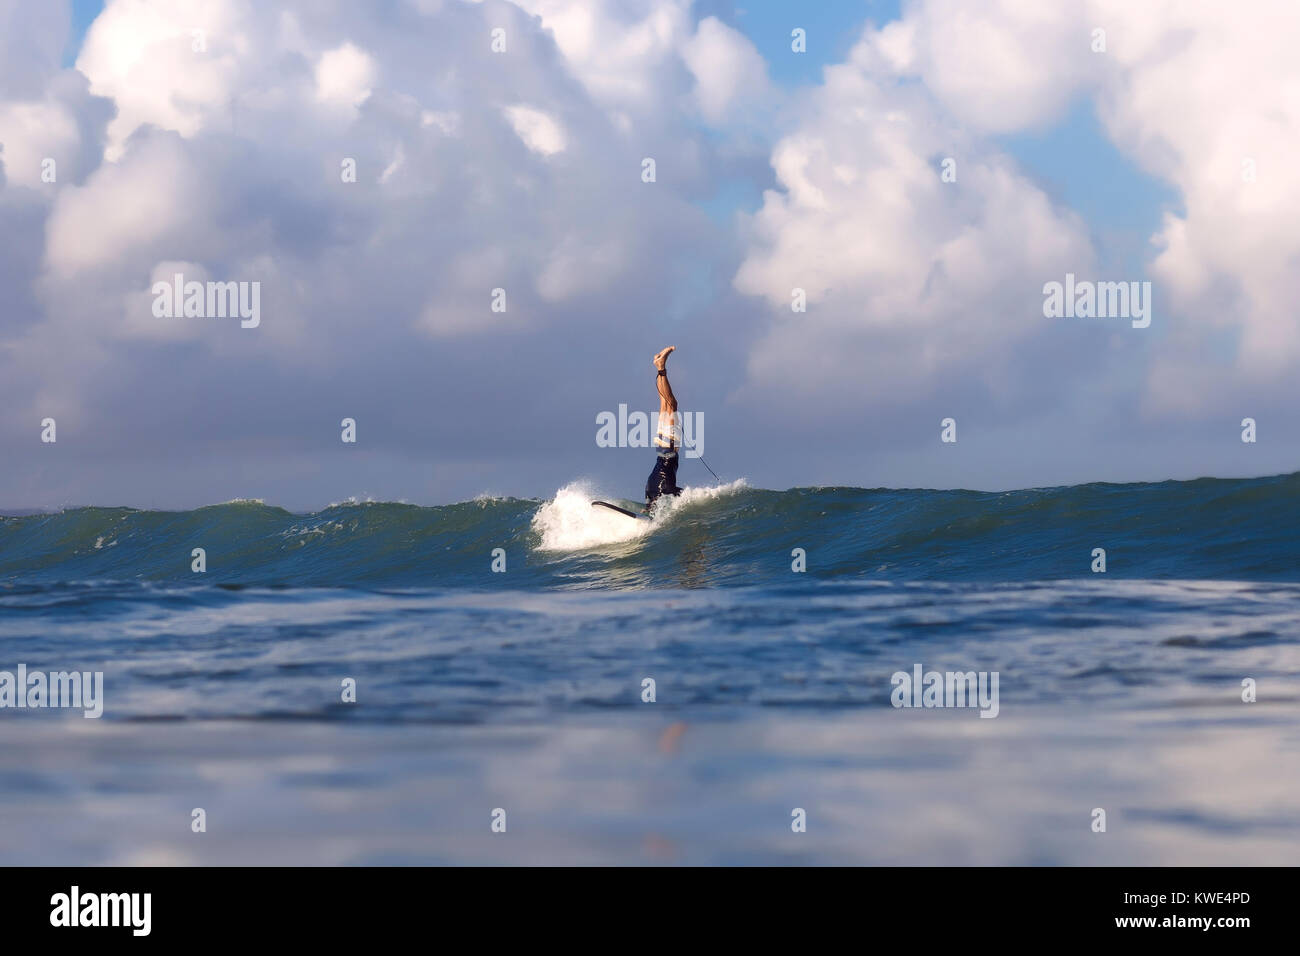 Low section of surfer doing stunts on surfboard against cloudy sky - Stock Image